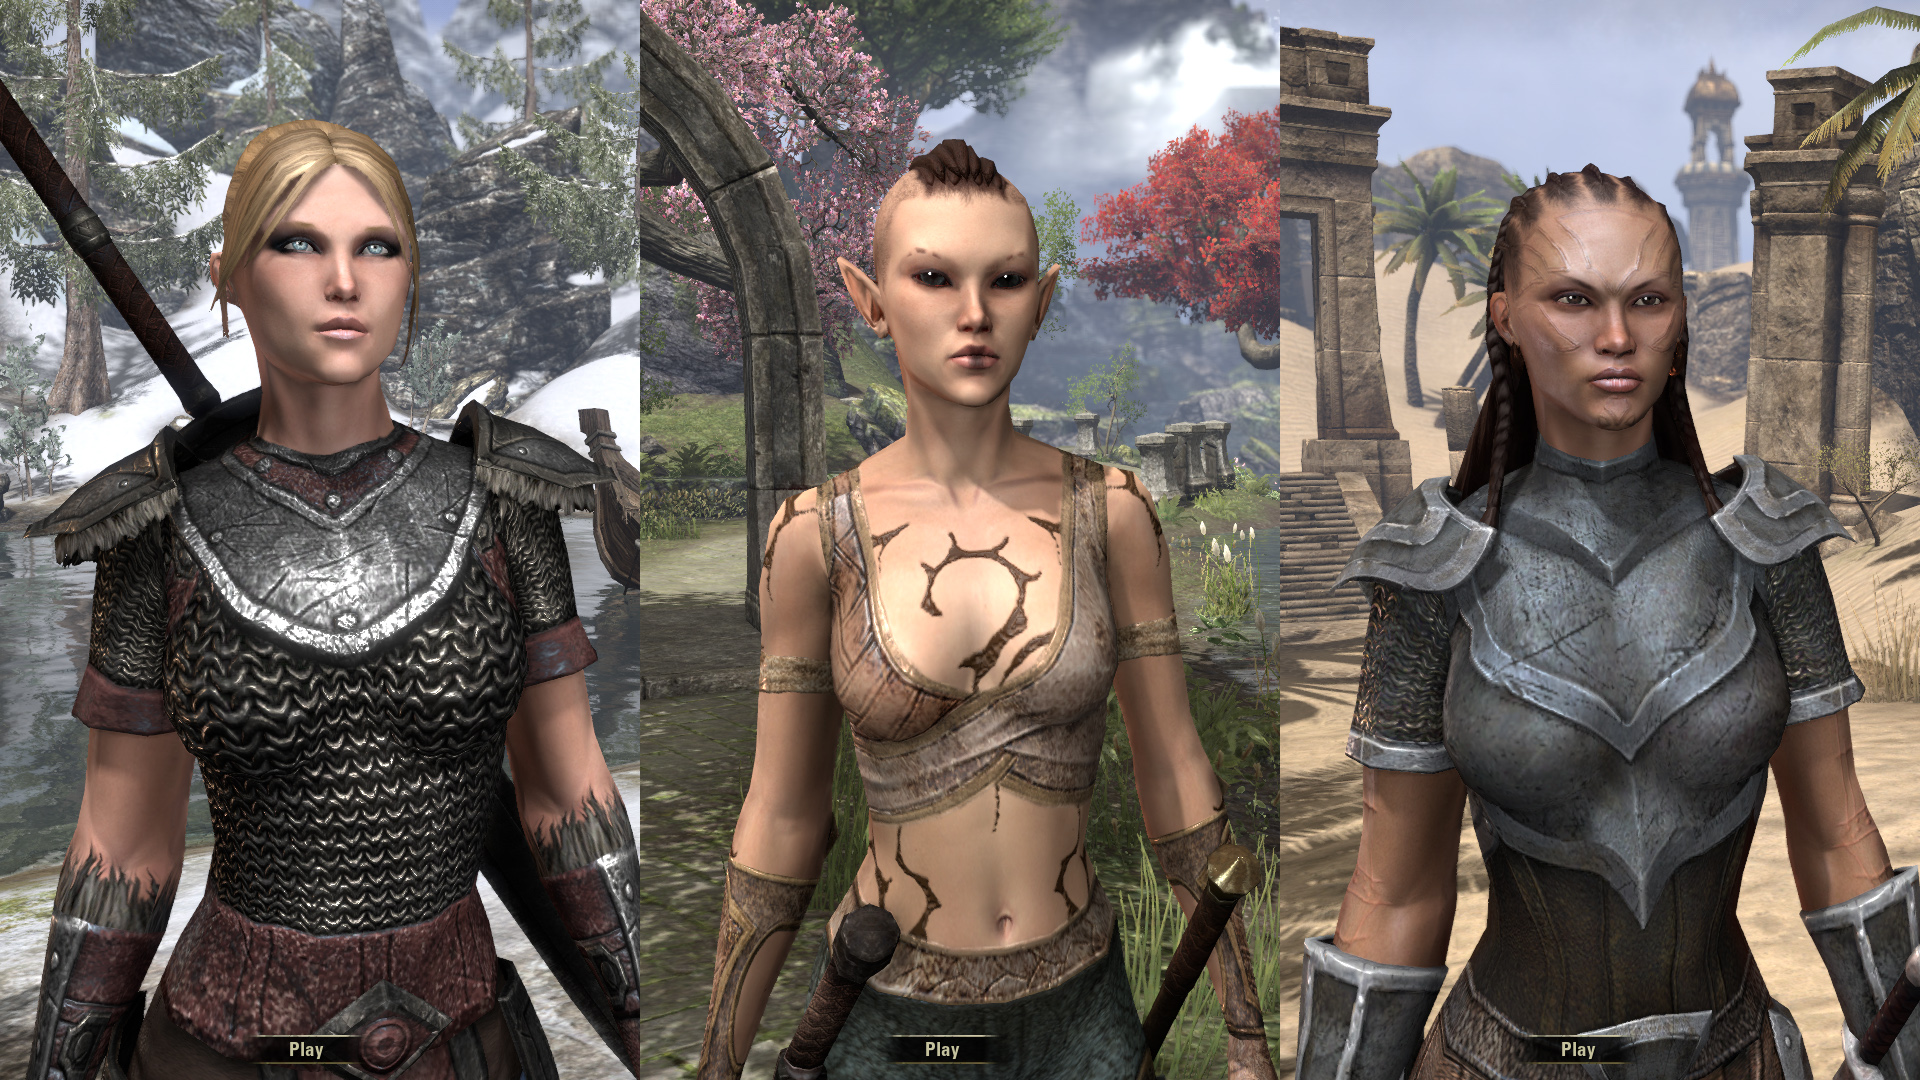 My current chars in ESO